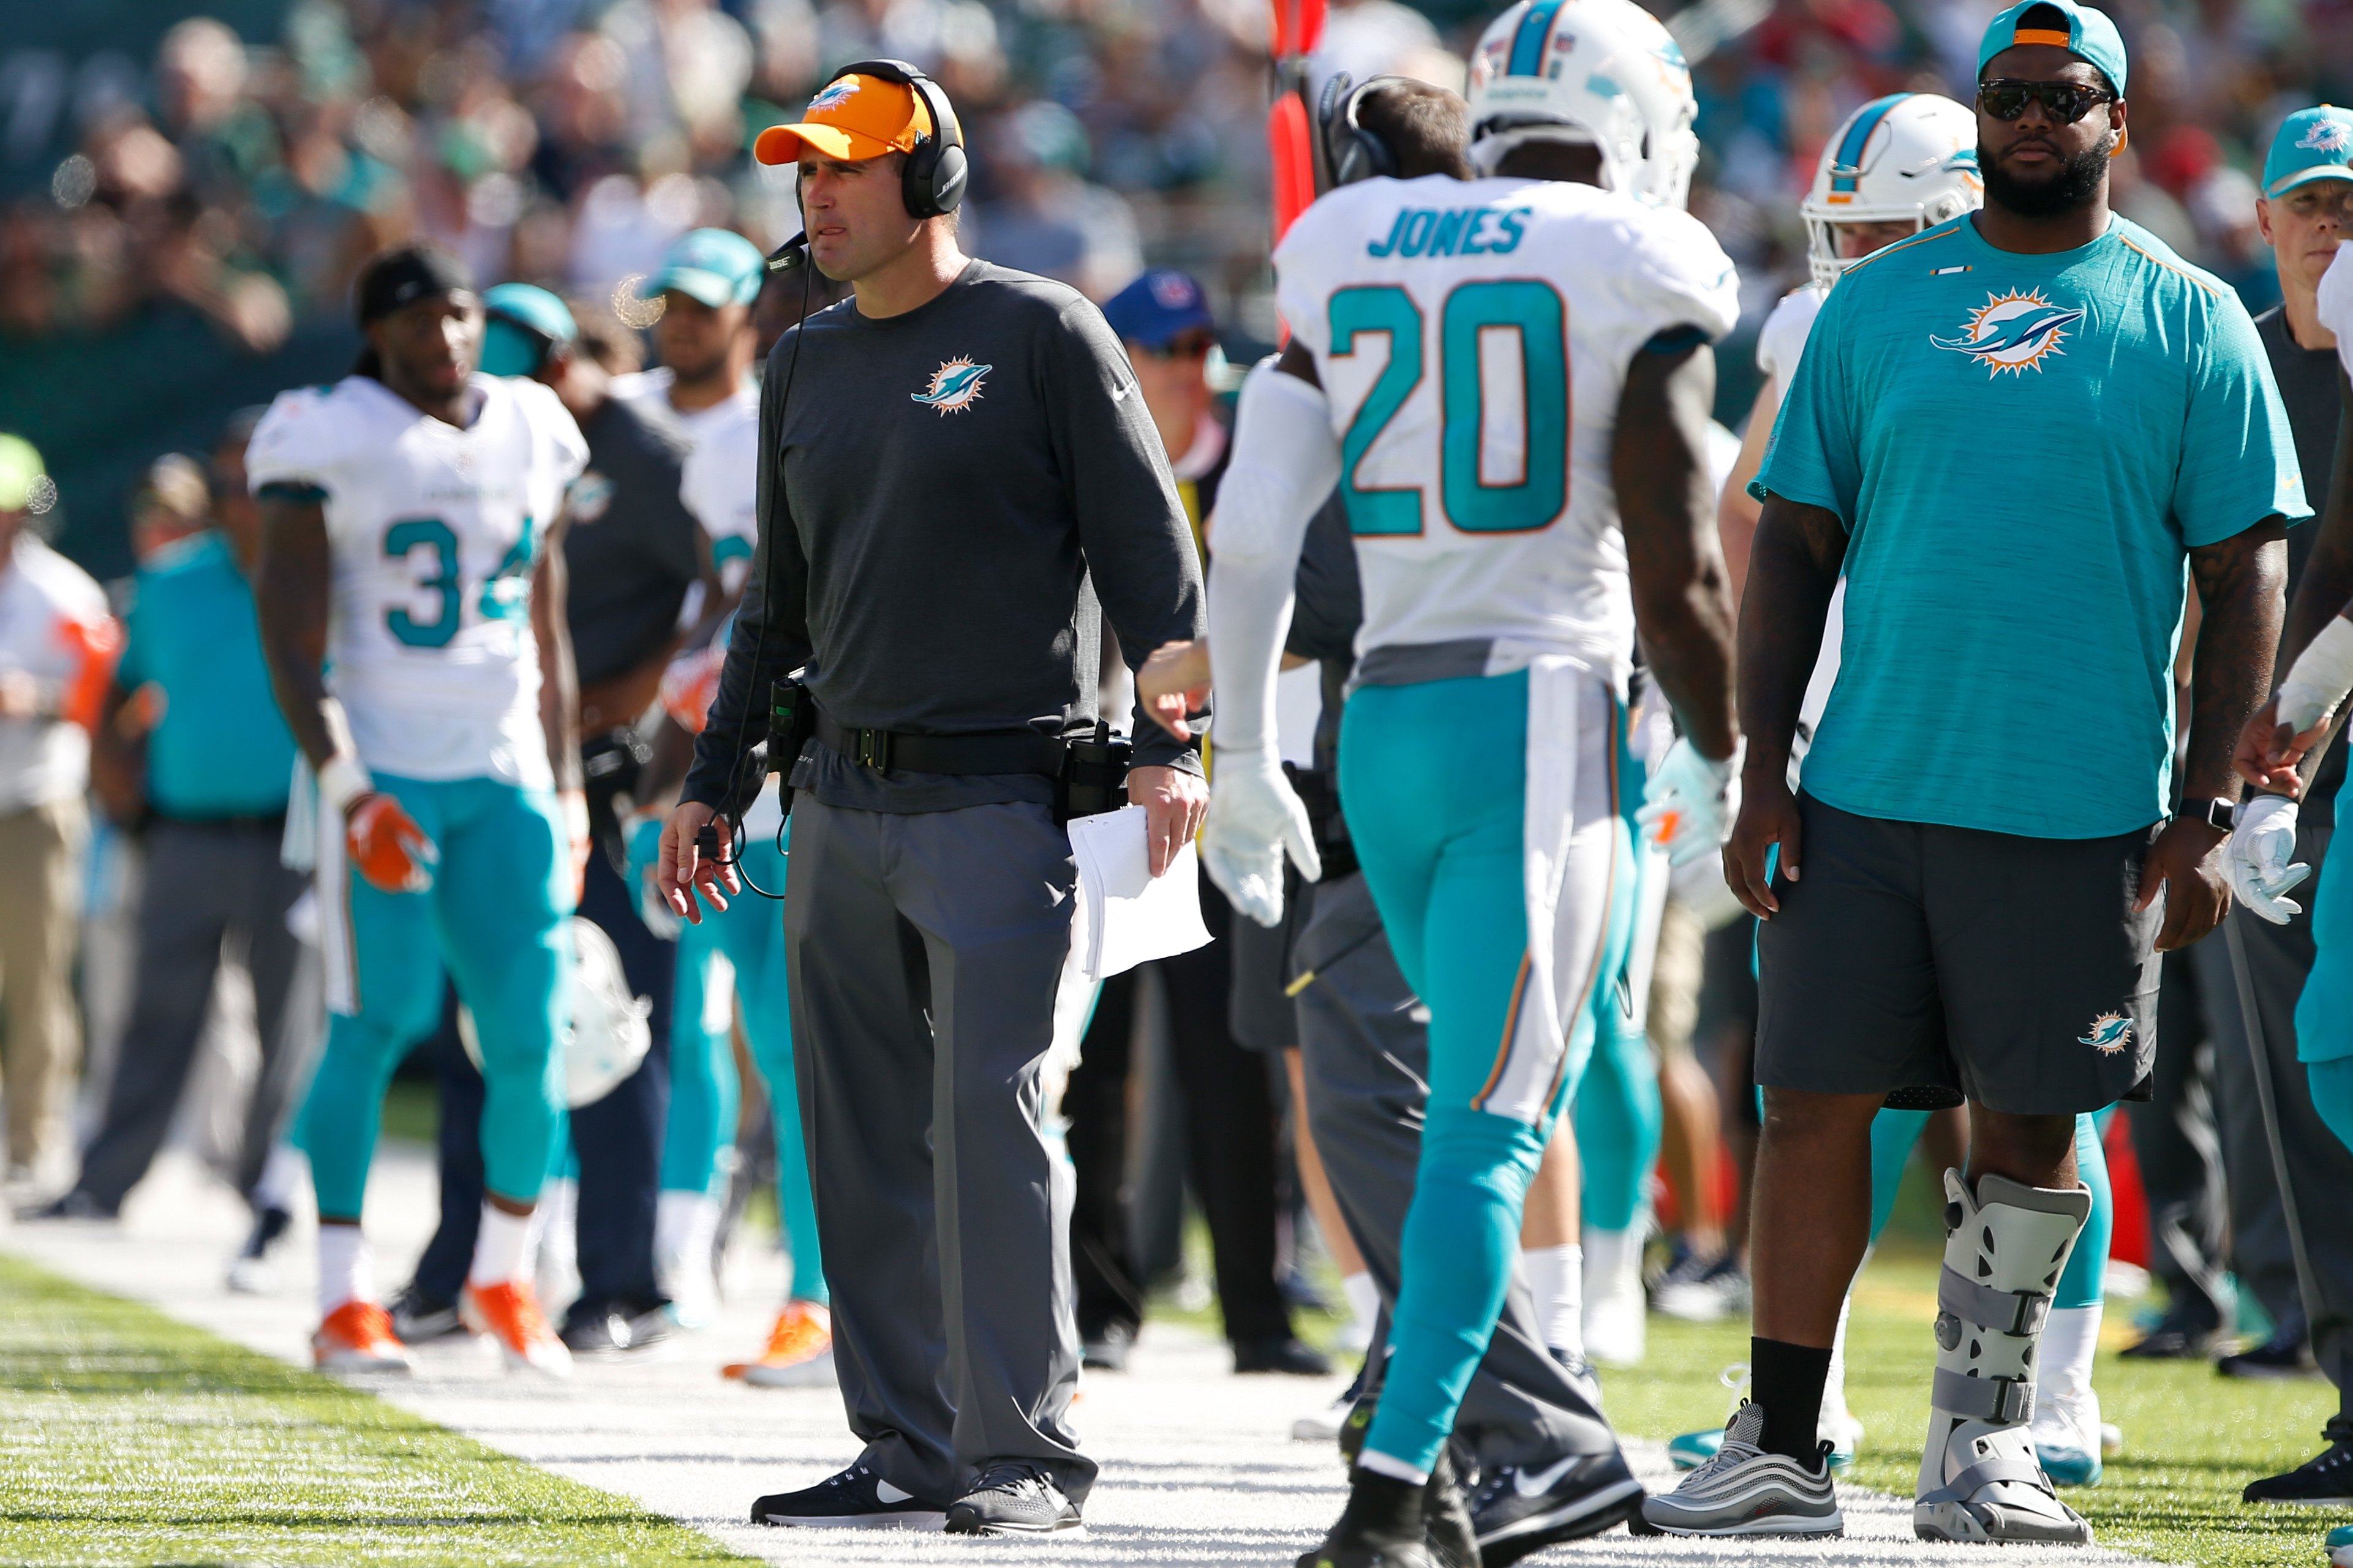 Video Appears To Show Dolphins O-Line Coach Chris Foerster Snorting Lines